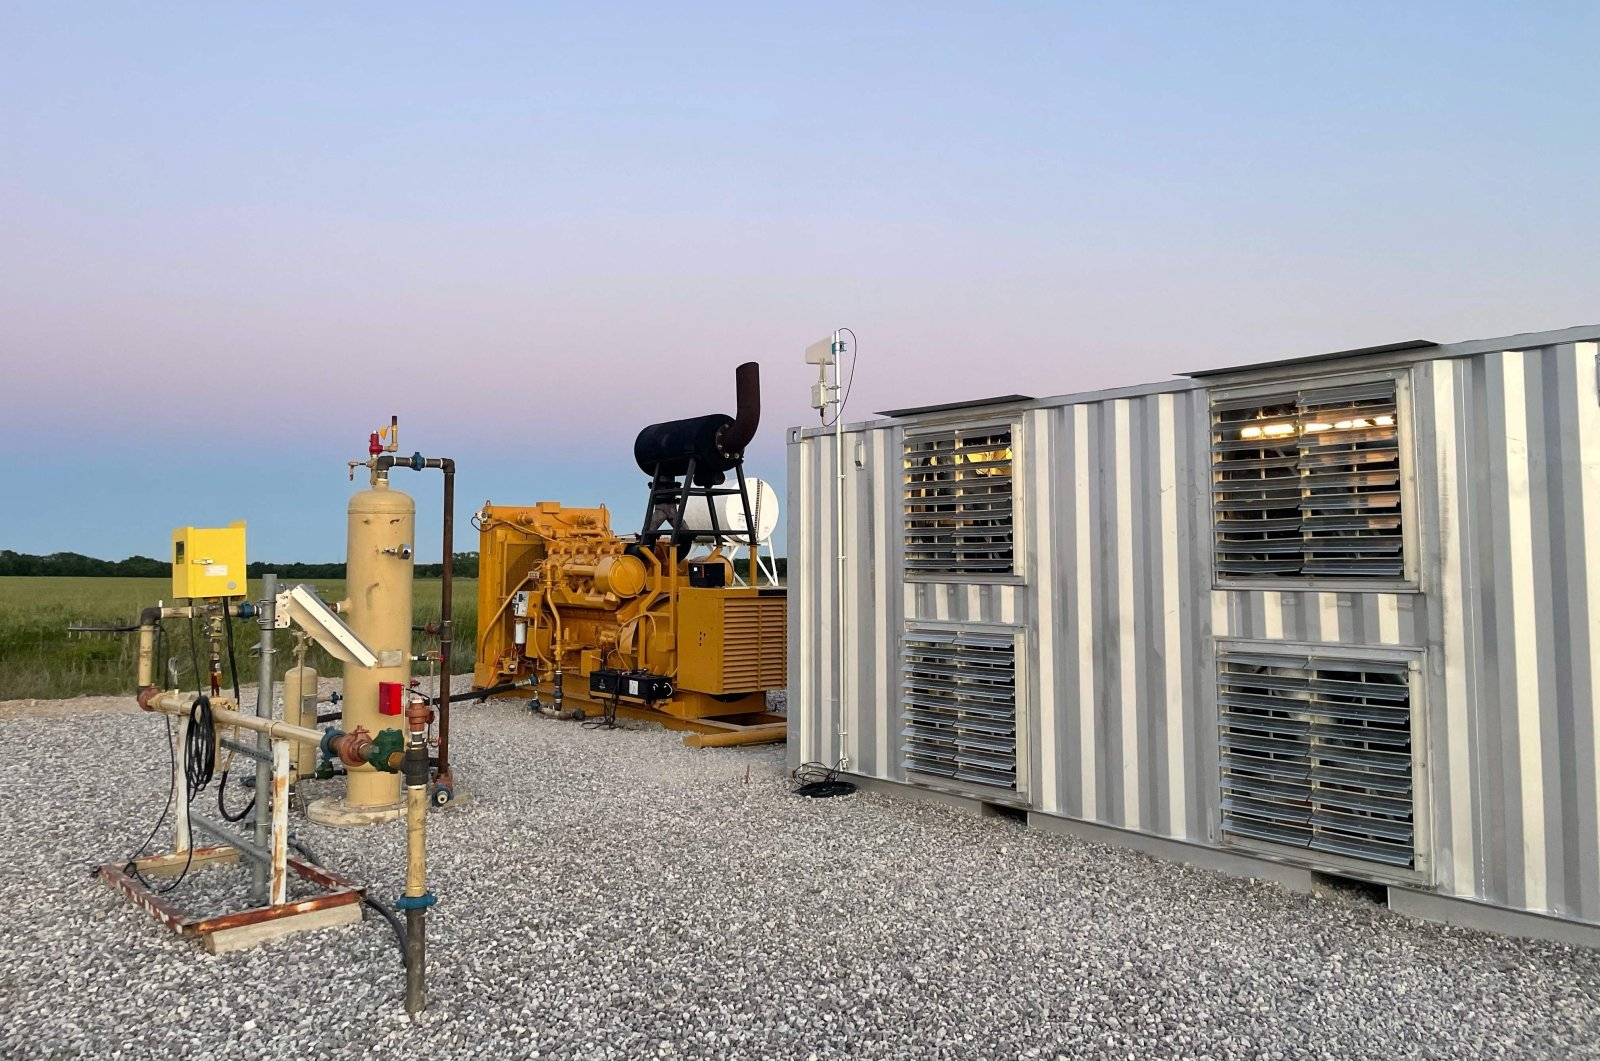 A natural gas generator powering a bitcoin mining data center on an oil field in Texas, U.S, May 6, 2021. (AFP Photo)